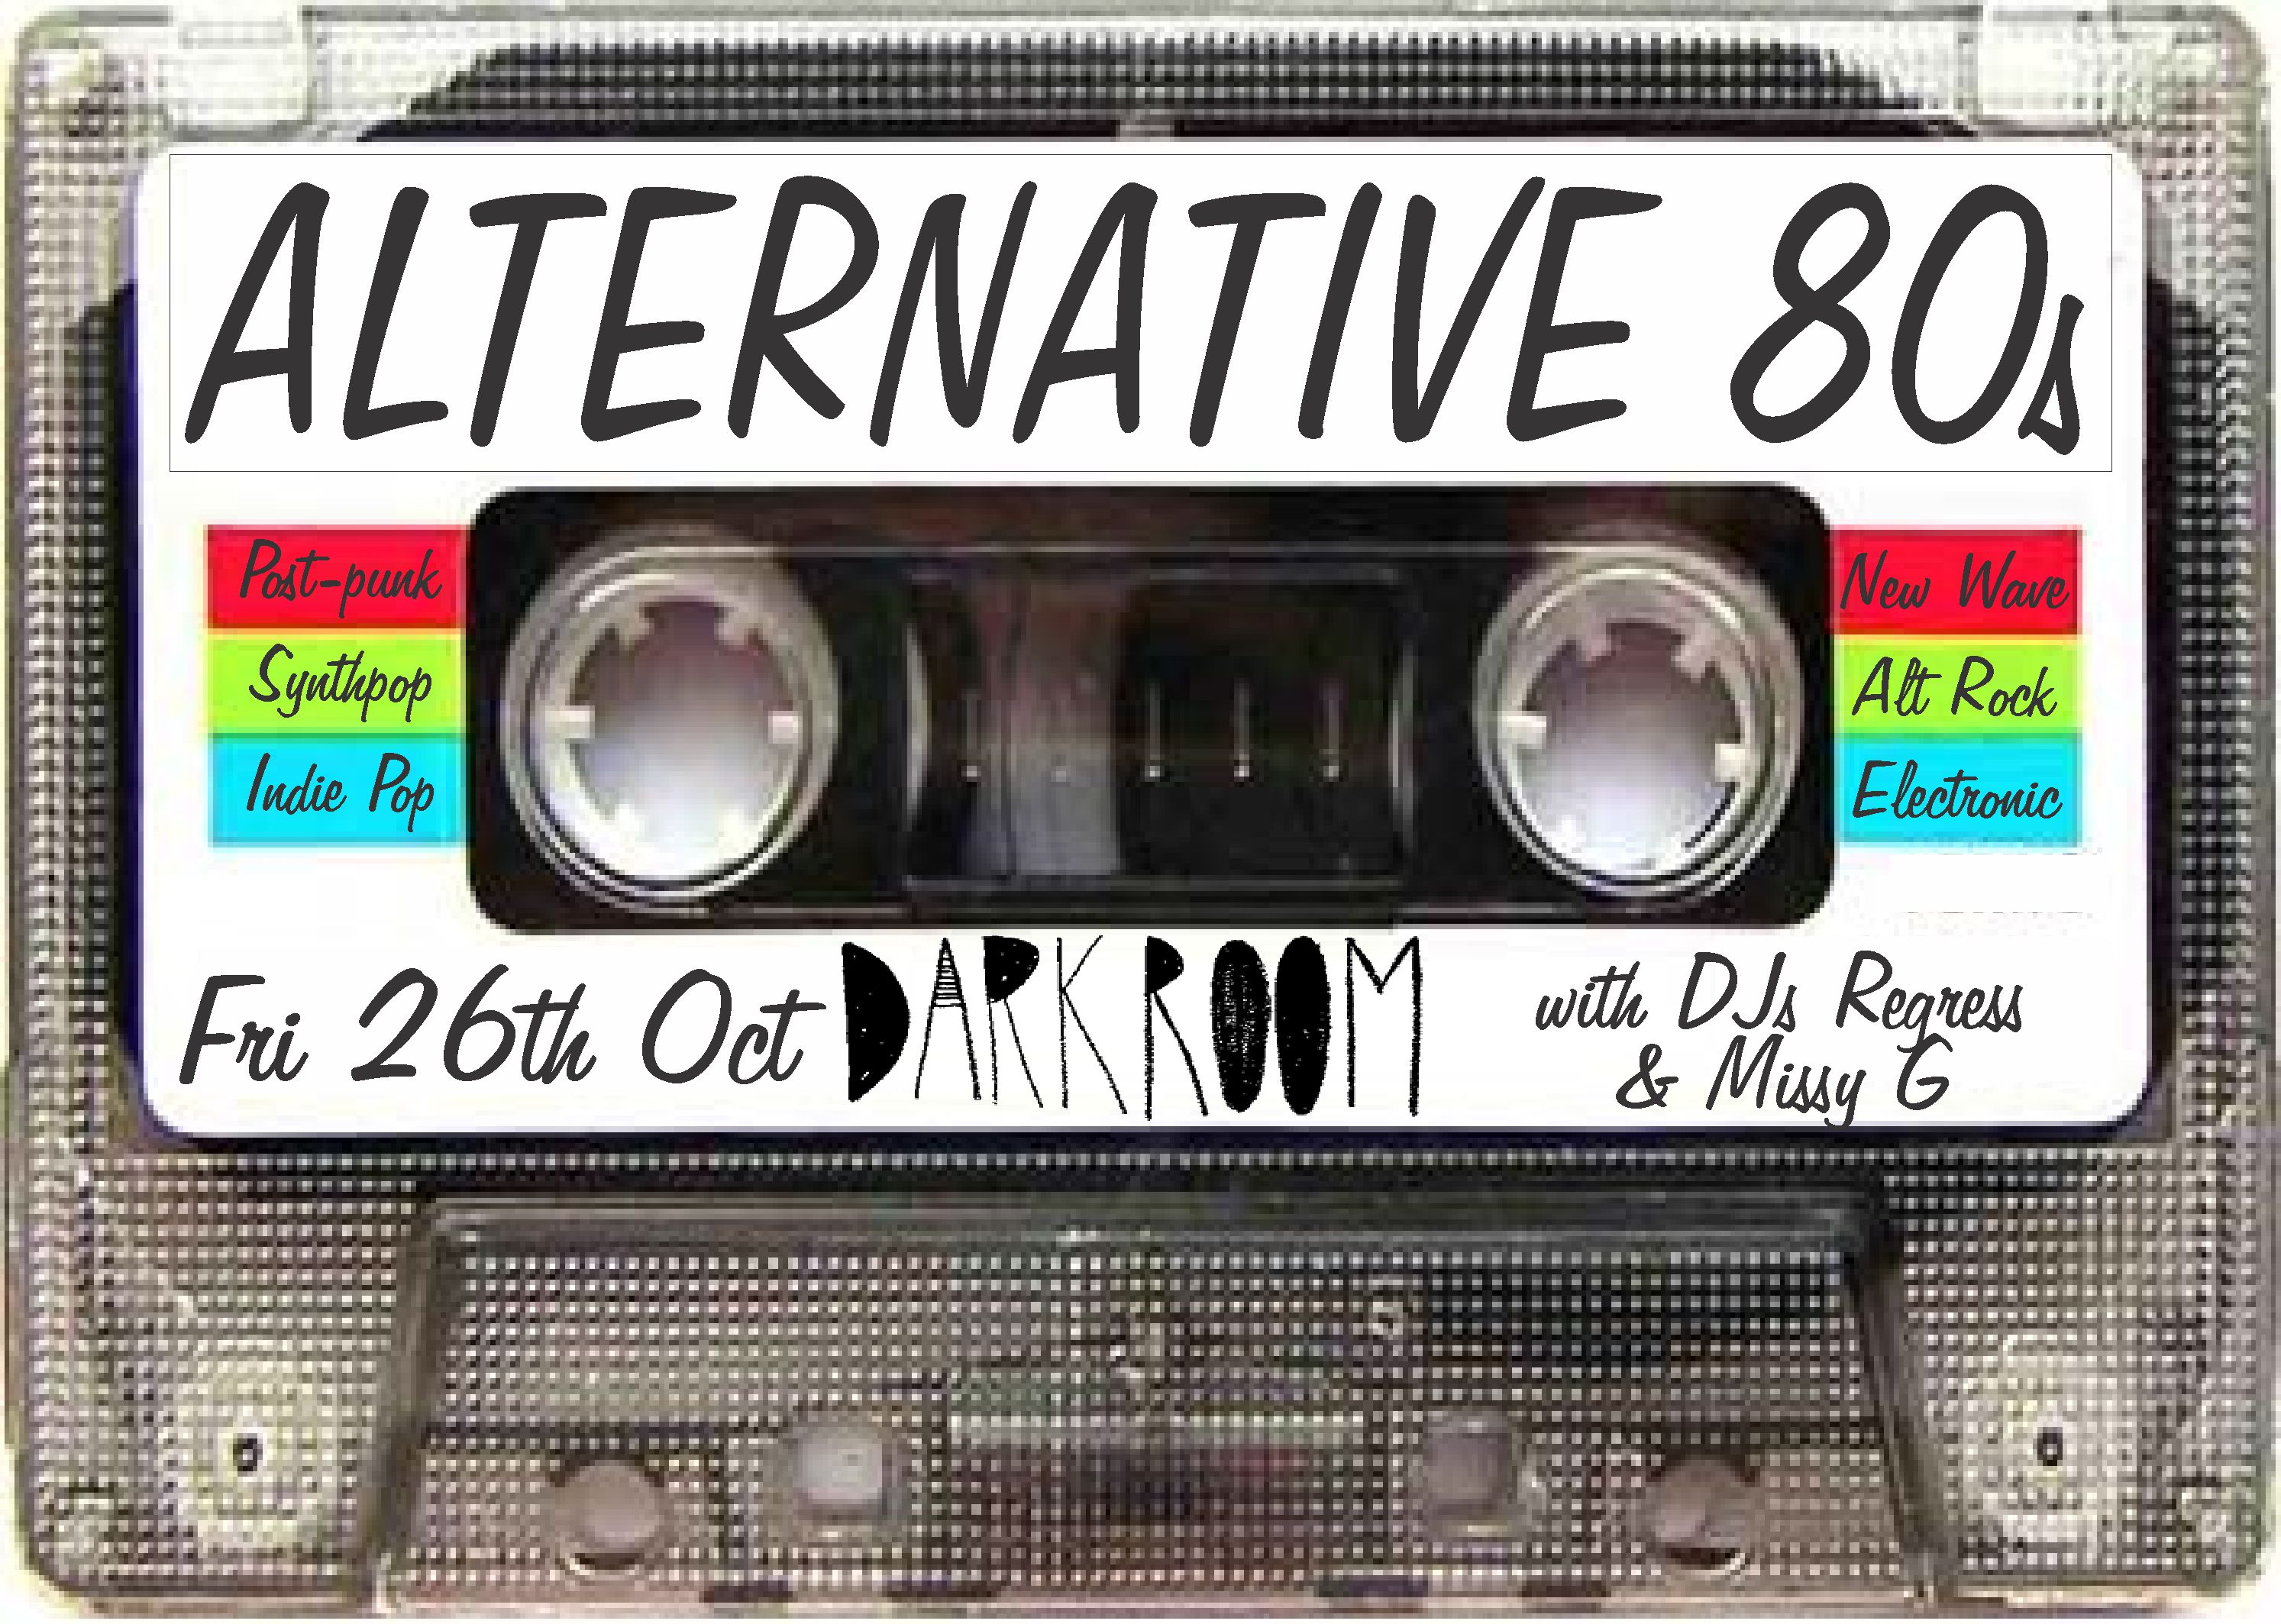 Experience The Other Side Of 80s Music DJs Regress And Missy G Will Be Playing All Your Alternative Favs Post Punk Synthpop Alt Rock Indie Pop